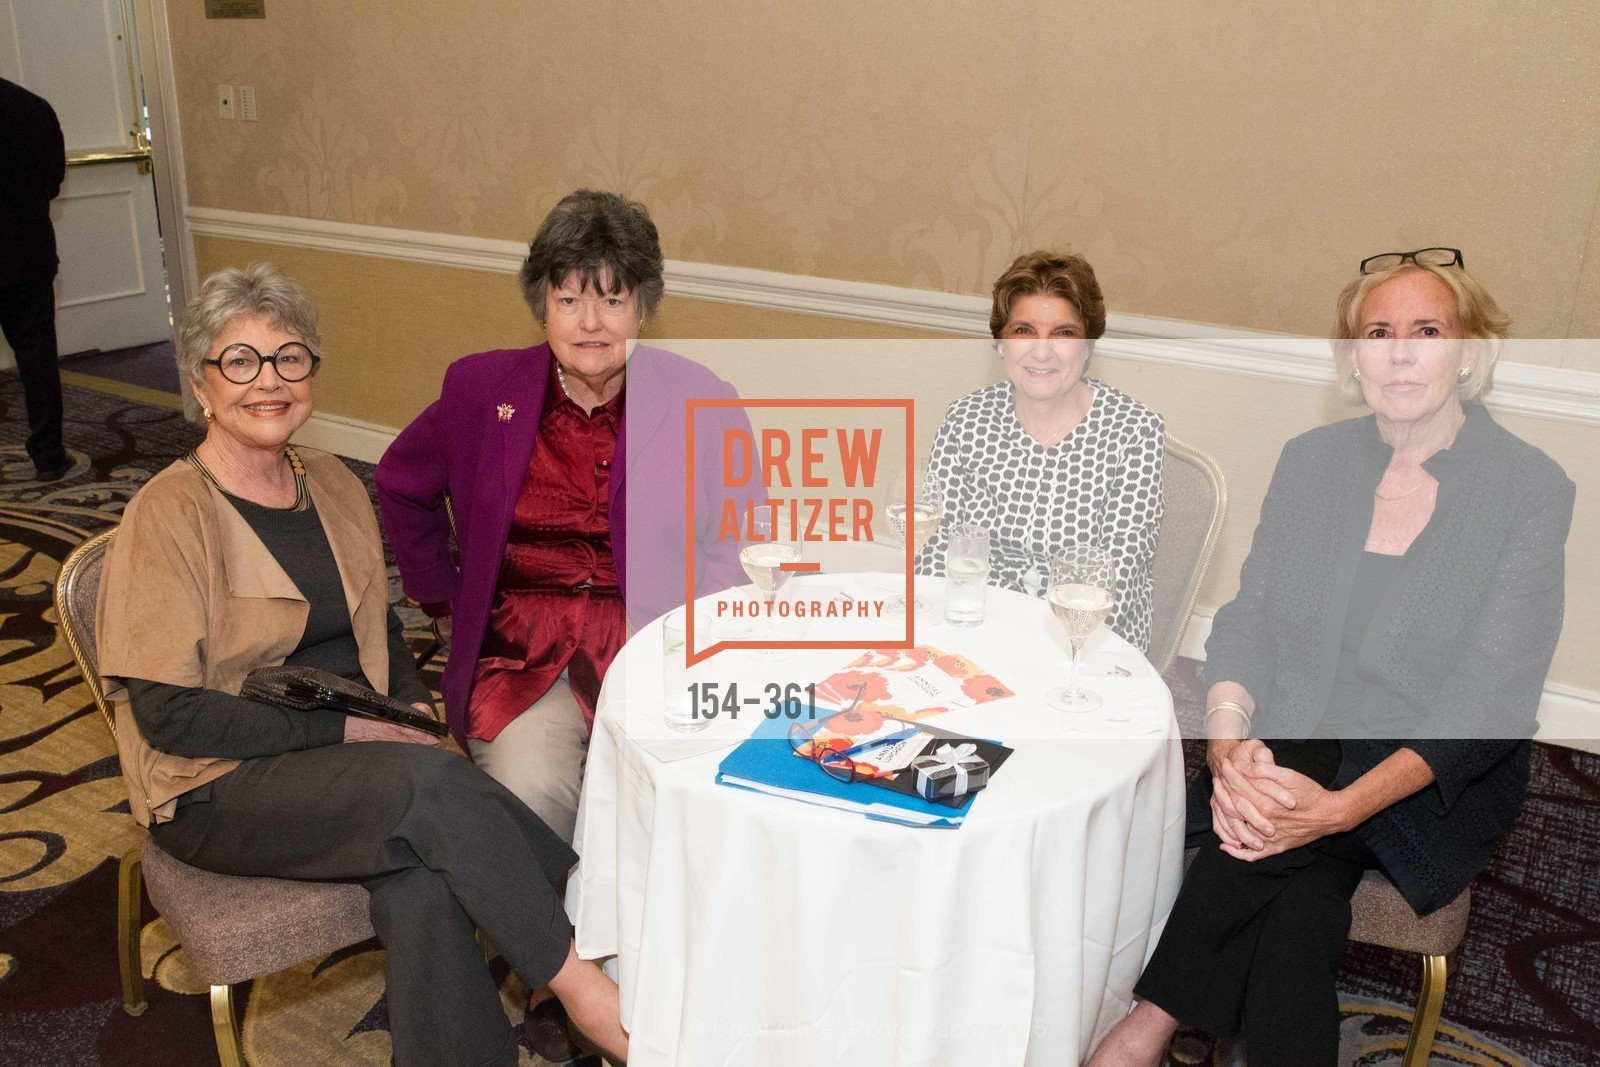 Arlene Ballin, Moira Kimball, Barbara Greico, Helen Hughes, Homeless Prenatal Programs Annual Luncheon, Fairmont Hotel, October 9th, 2015,Drew Altizer, Drew Altizer Photography, full-service agency, private events, San Francisco photographer, photographer california